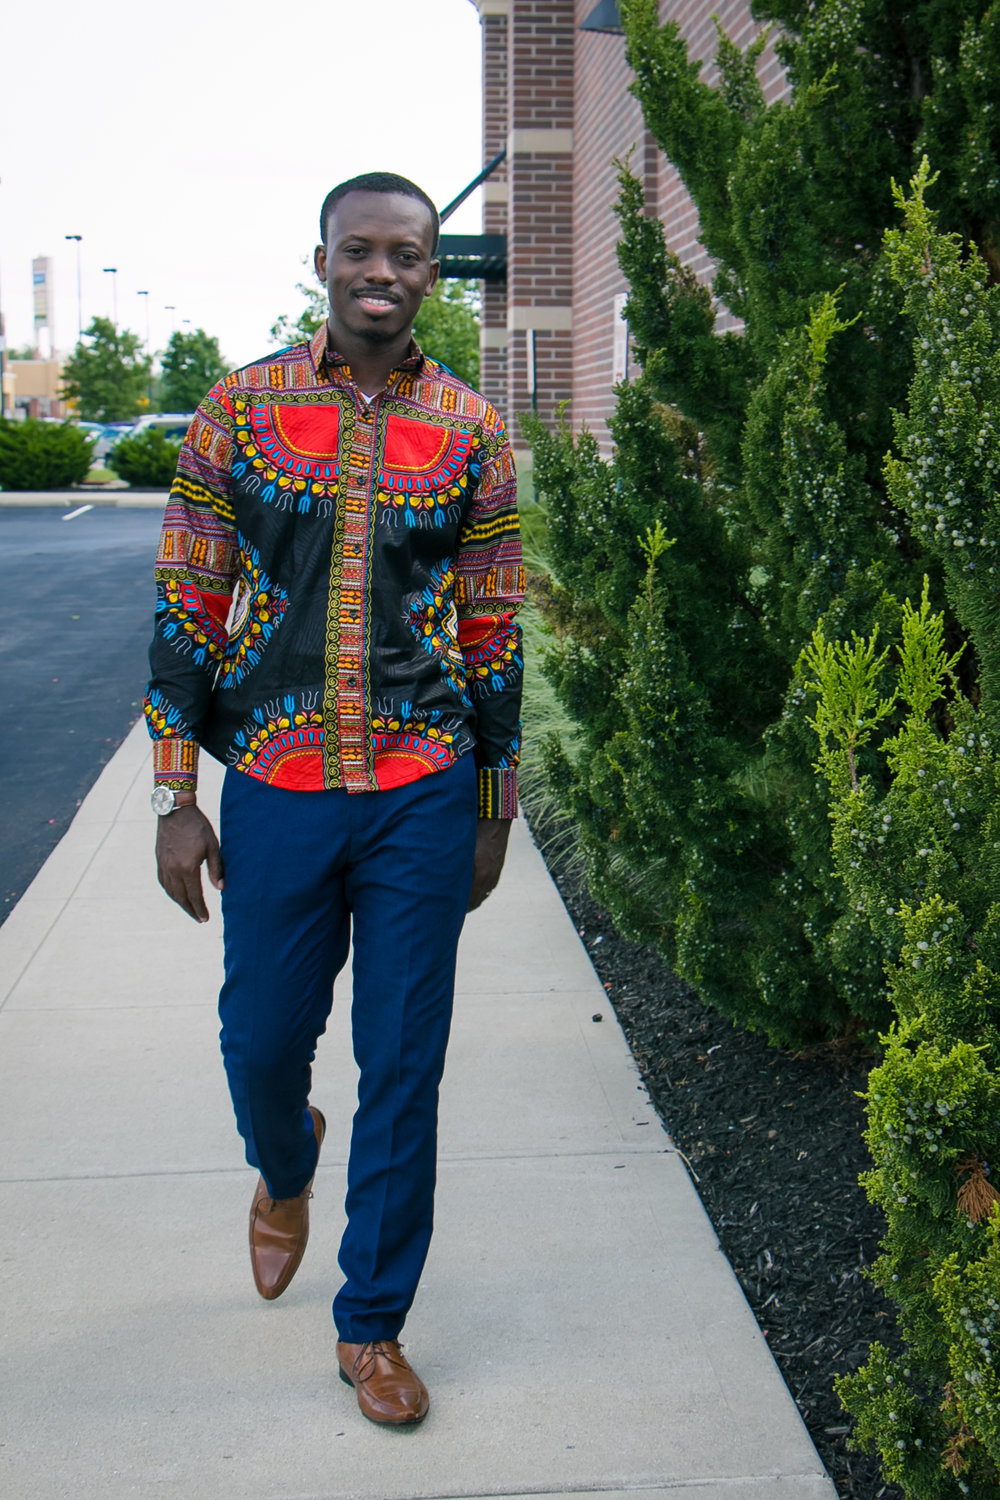 black dashiki shirt.jpg